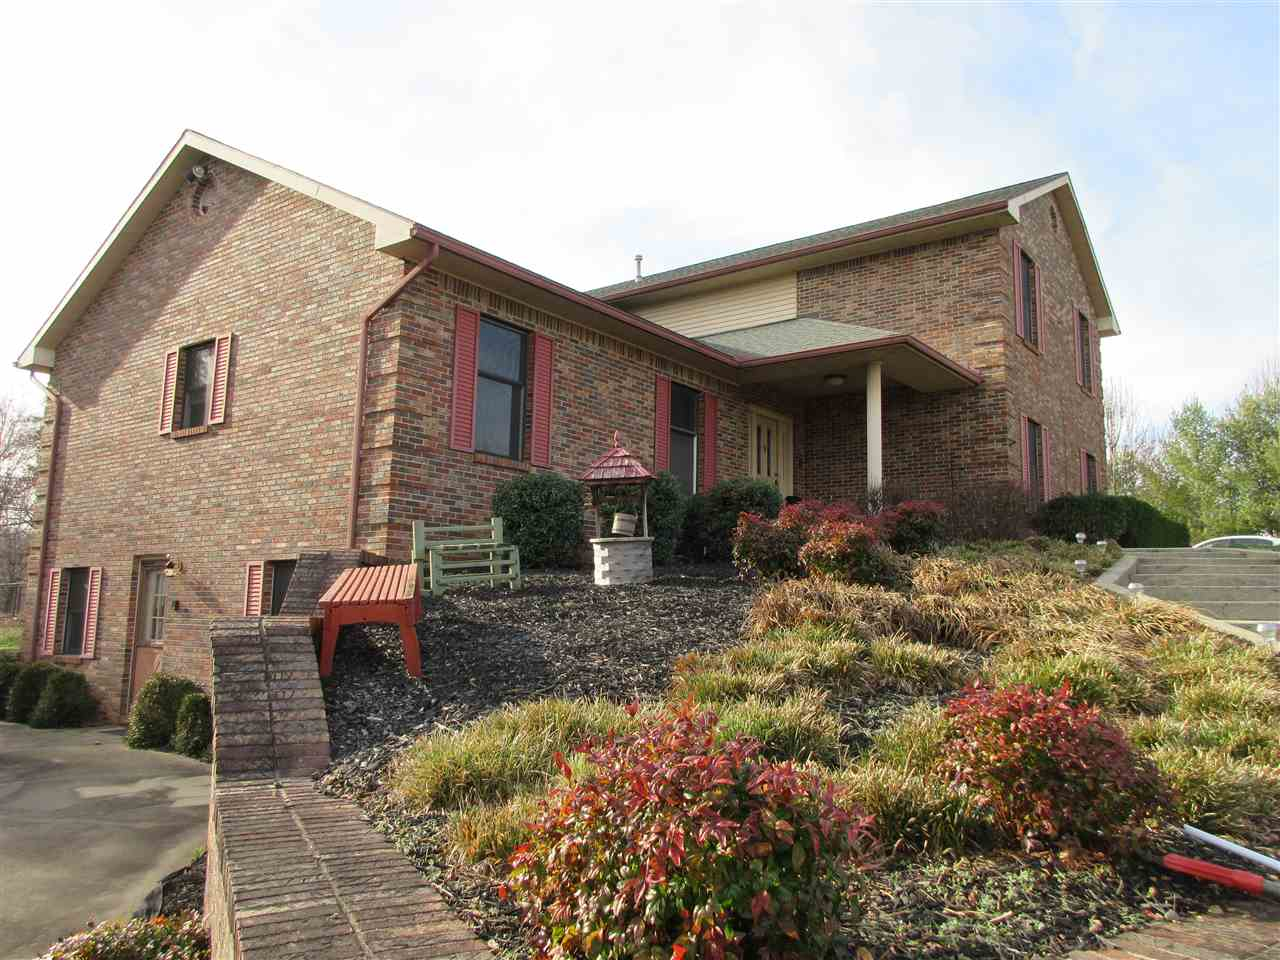 765 culver lane, New Haven, KY 40051